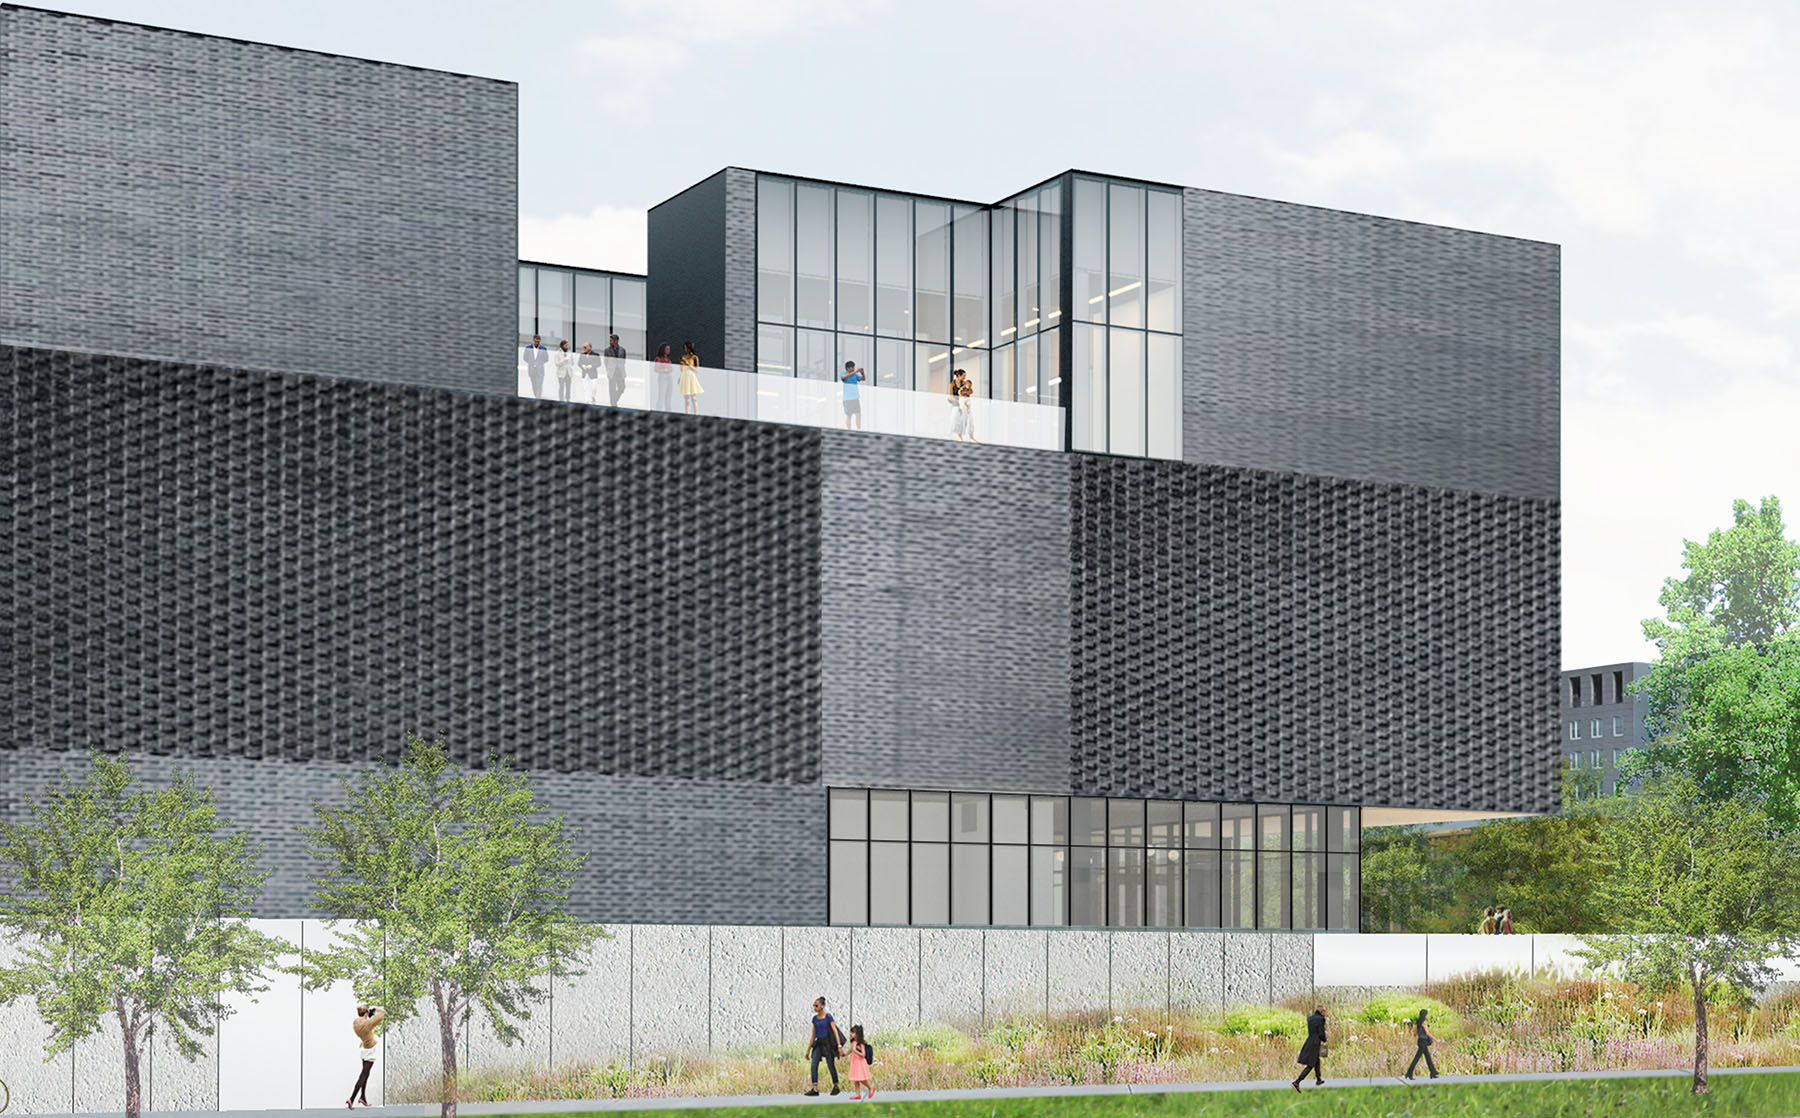 A new home on campus: Stanley Museum of Art returns to the University of Iowa community